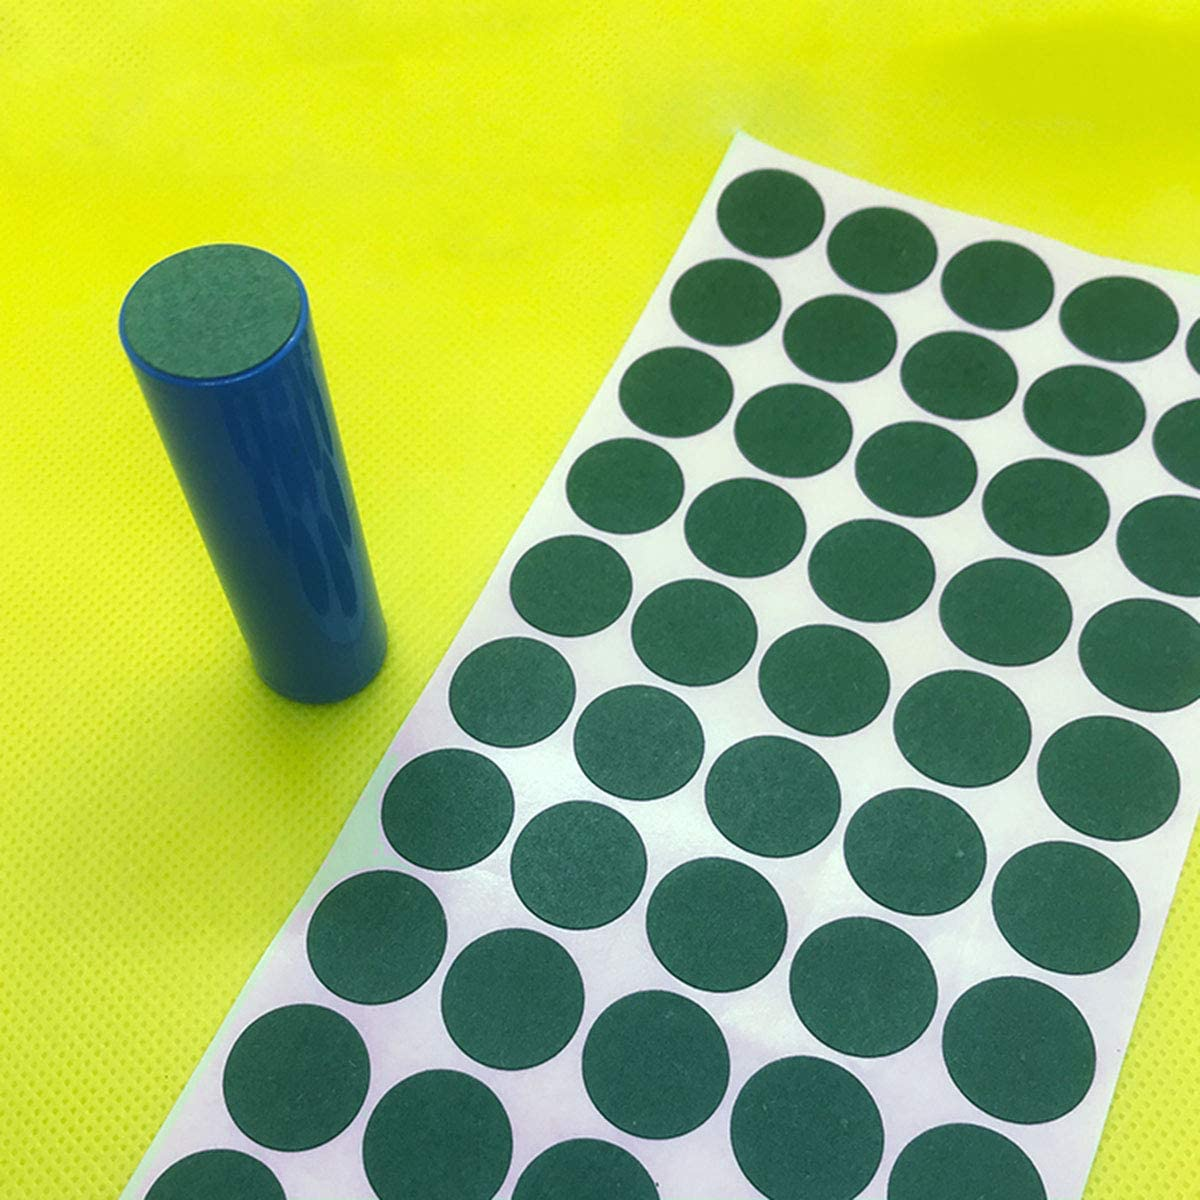 Red+Green E-outstanding 100pcs 18650 Lithium Battery Insulator Solid Round Shape Paper Pad Electrical Battery Insulation Sticker Insulating Adhesive Papers